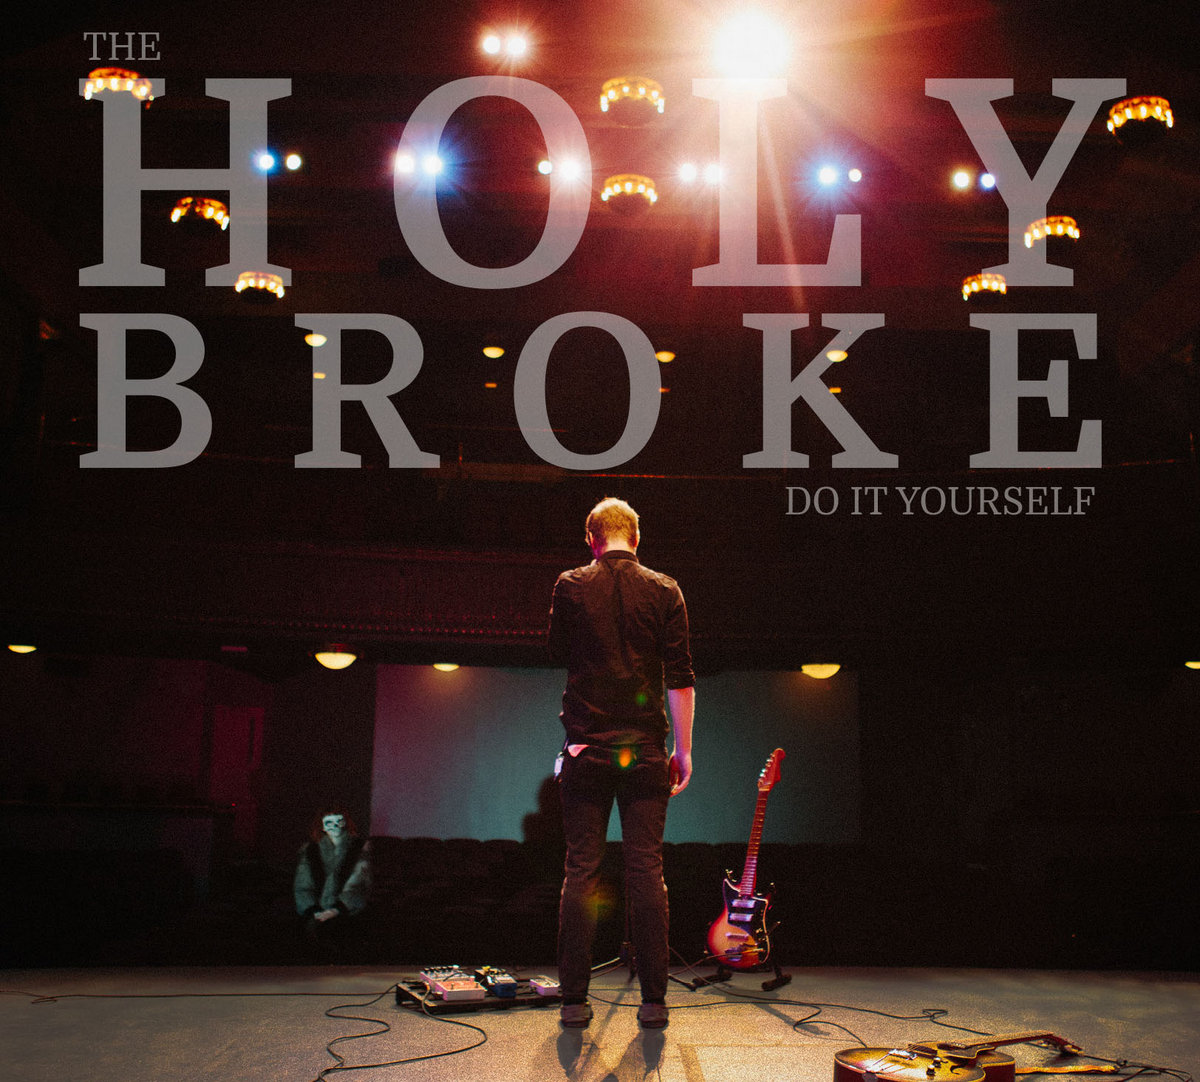 Do it yourself the holy broke do it yourself by the holy broke solutioingenieria Gallery